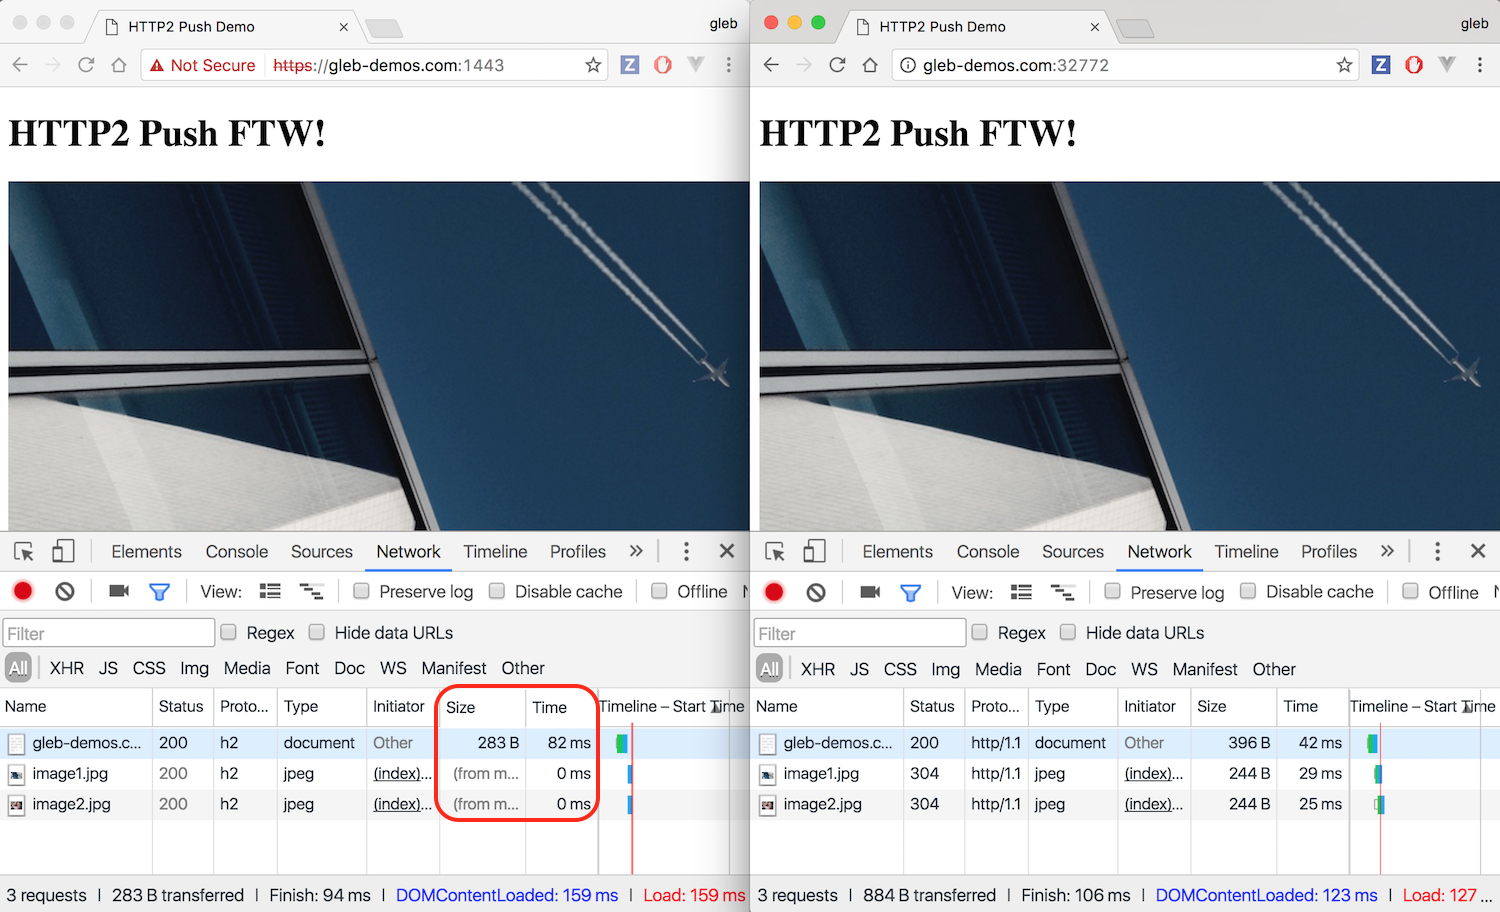 HTTP2 resources are cached by the browser